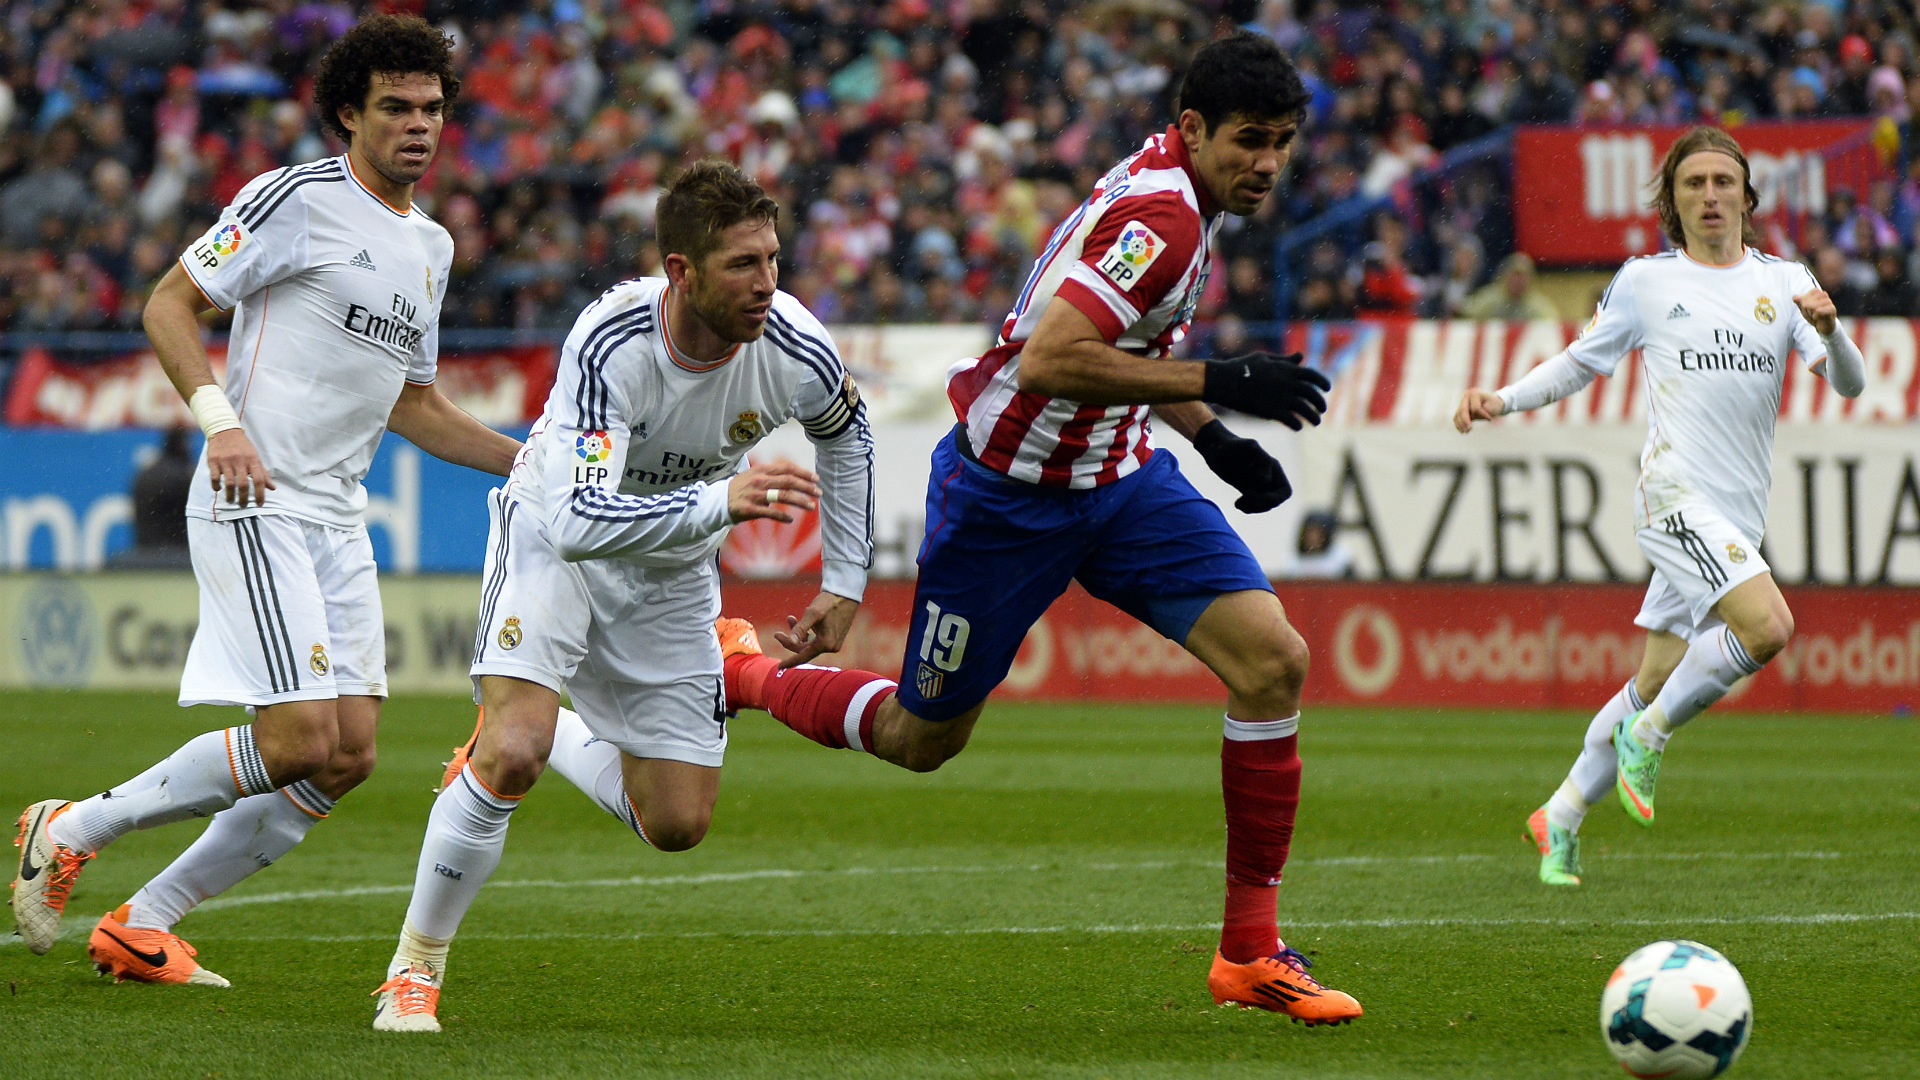 Diego Costa Sergio Ramos Pepe Real Madrid Atletico Madrid